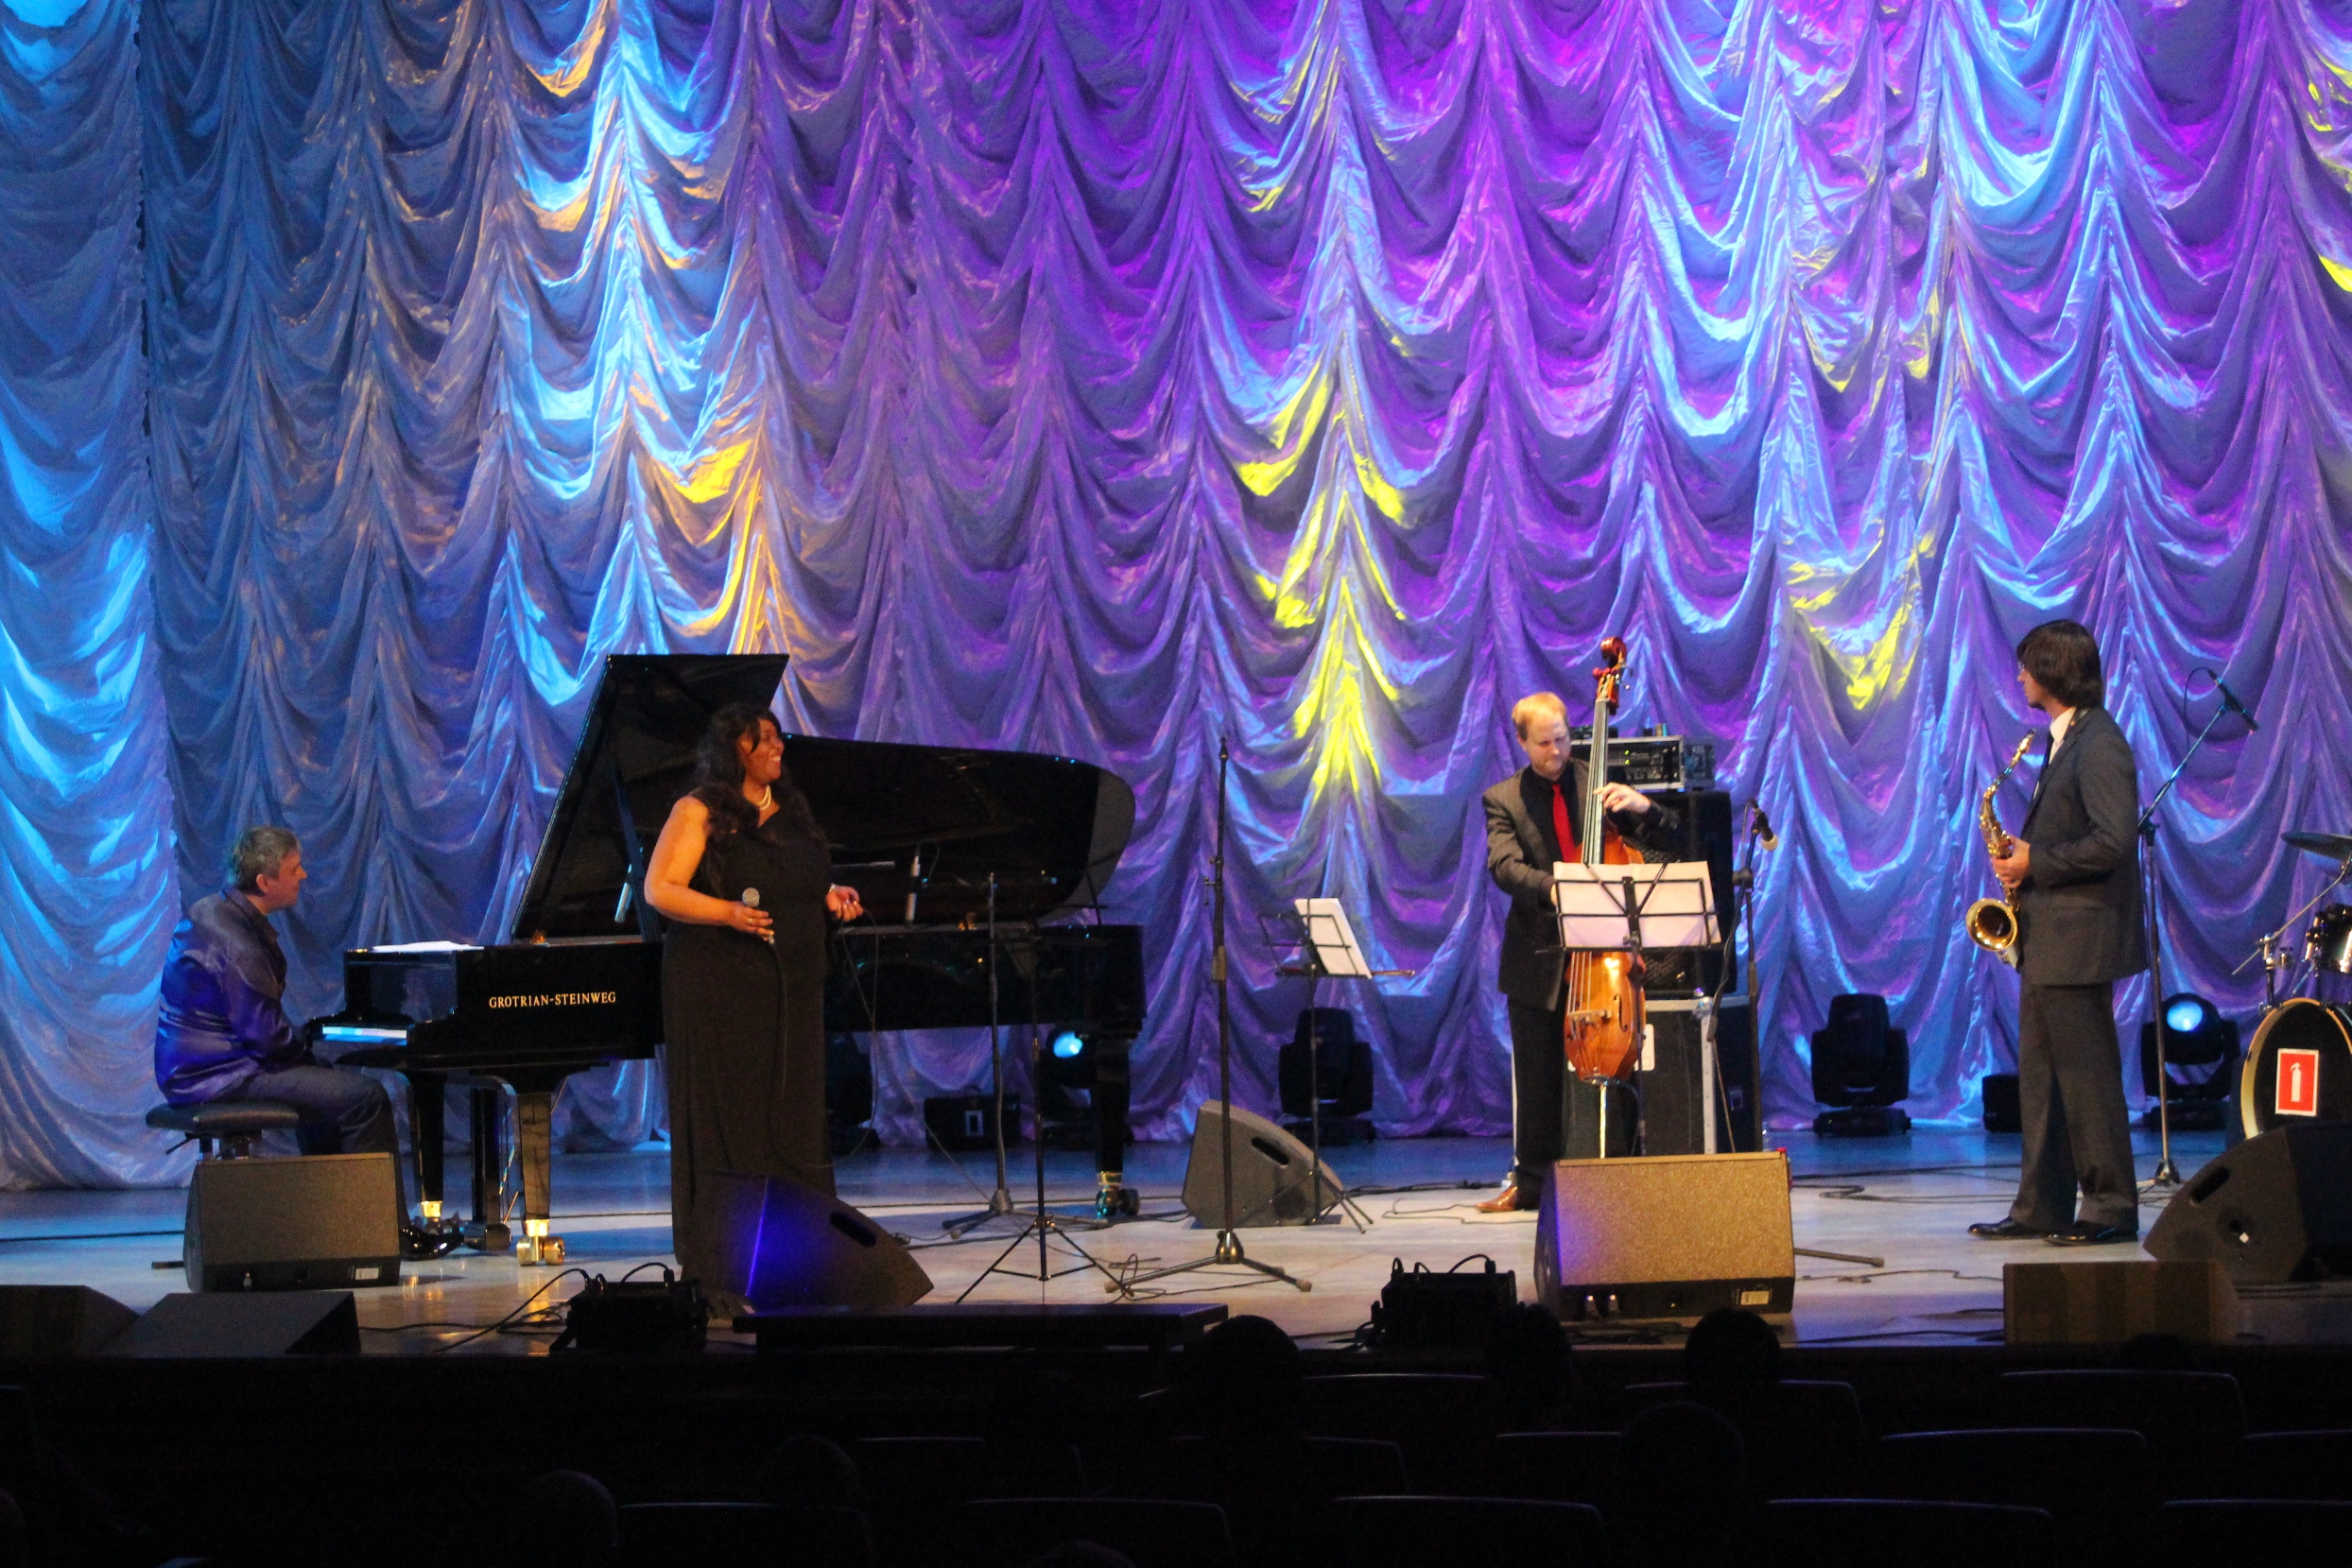 Michelle walker in concert at the philharmonic in vladivostok, russia.